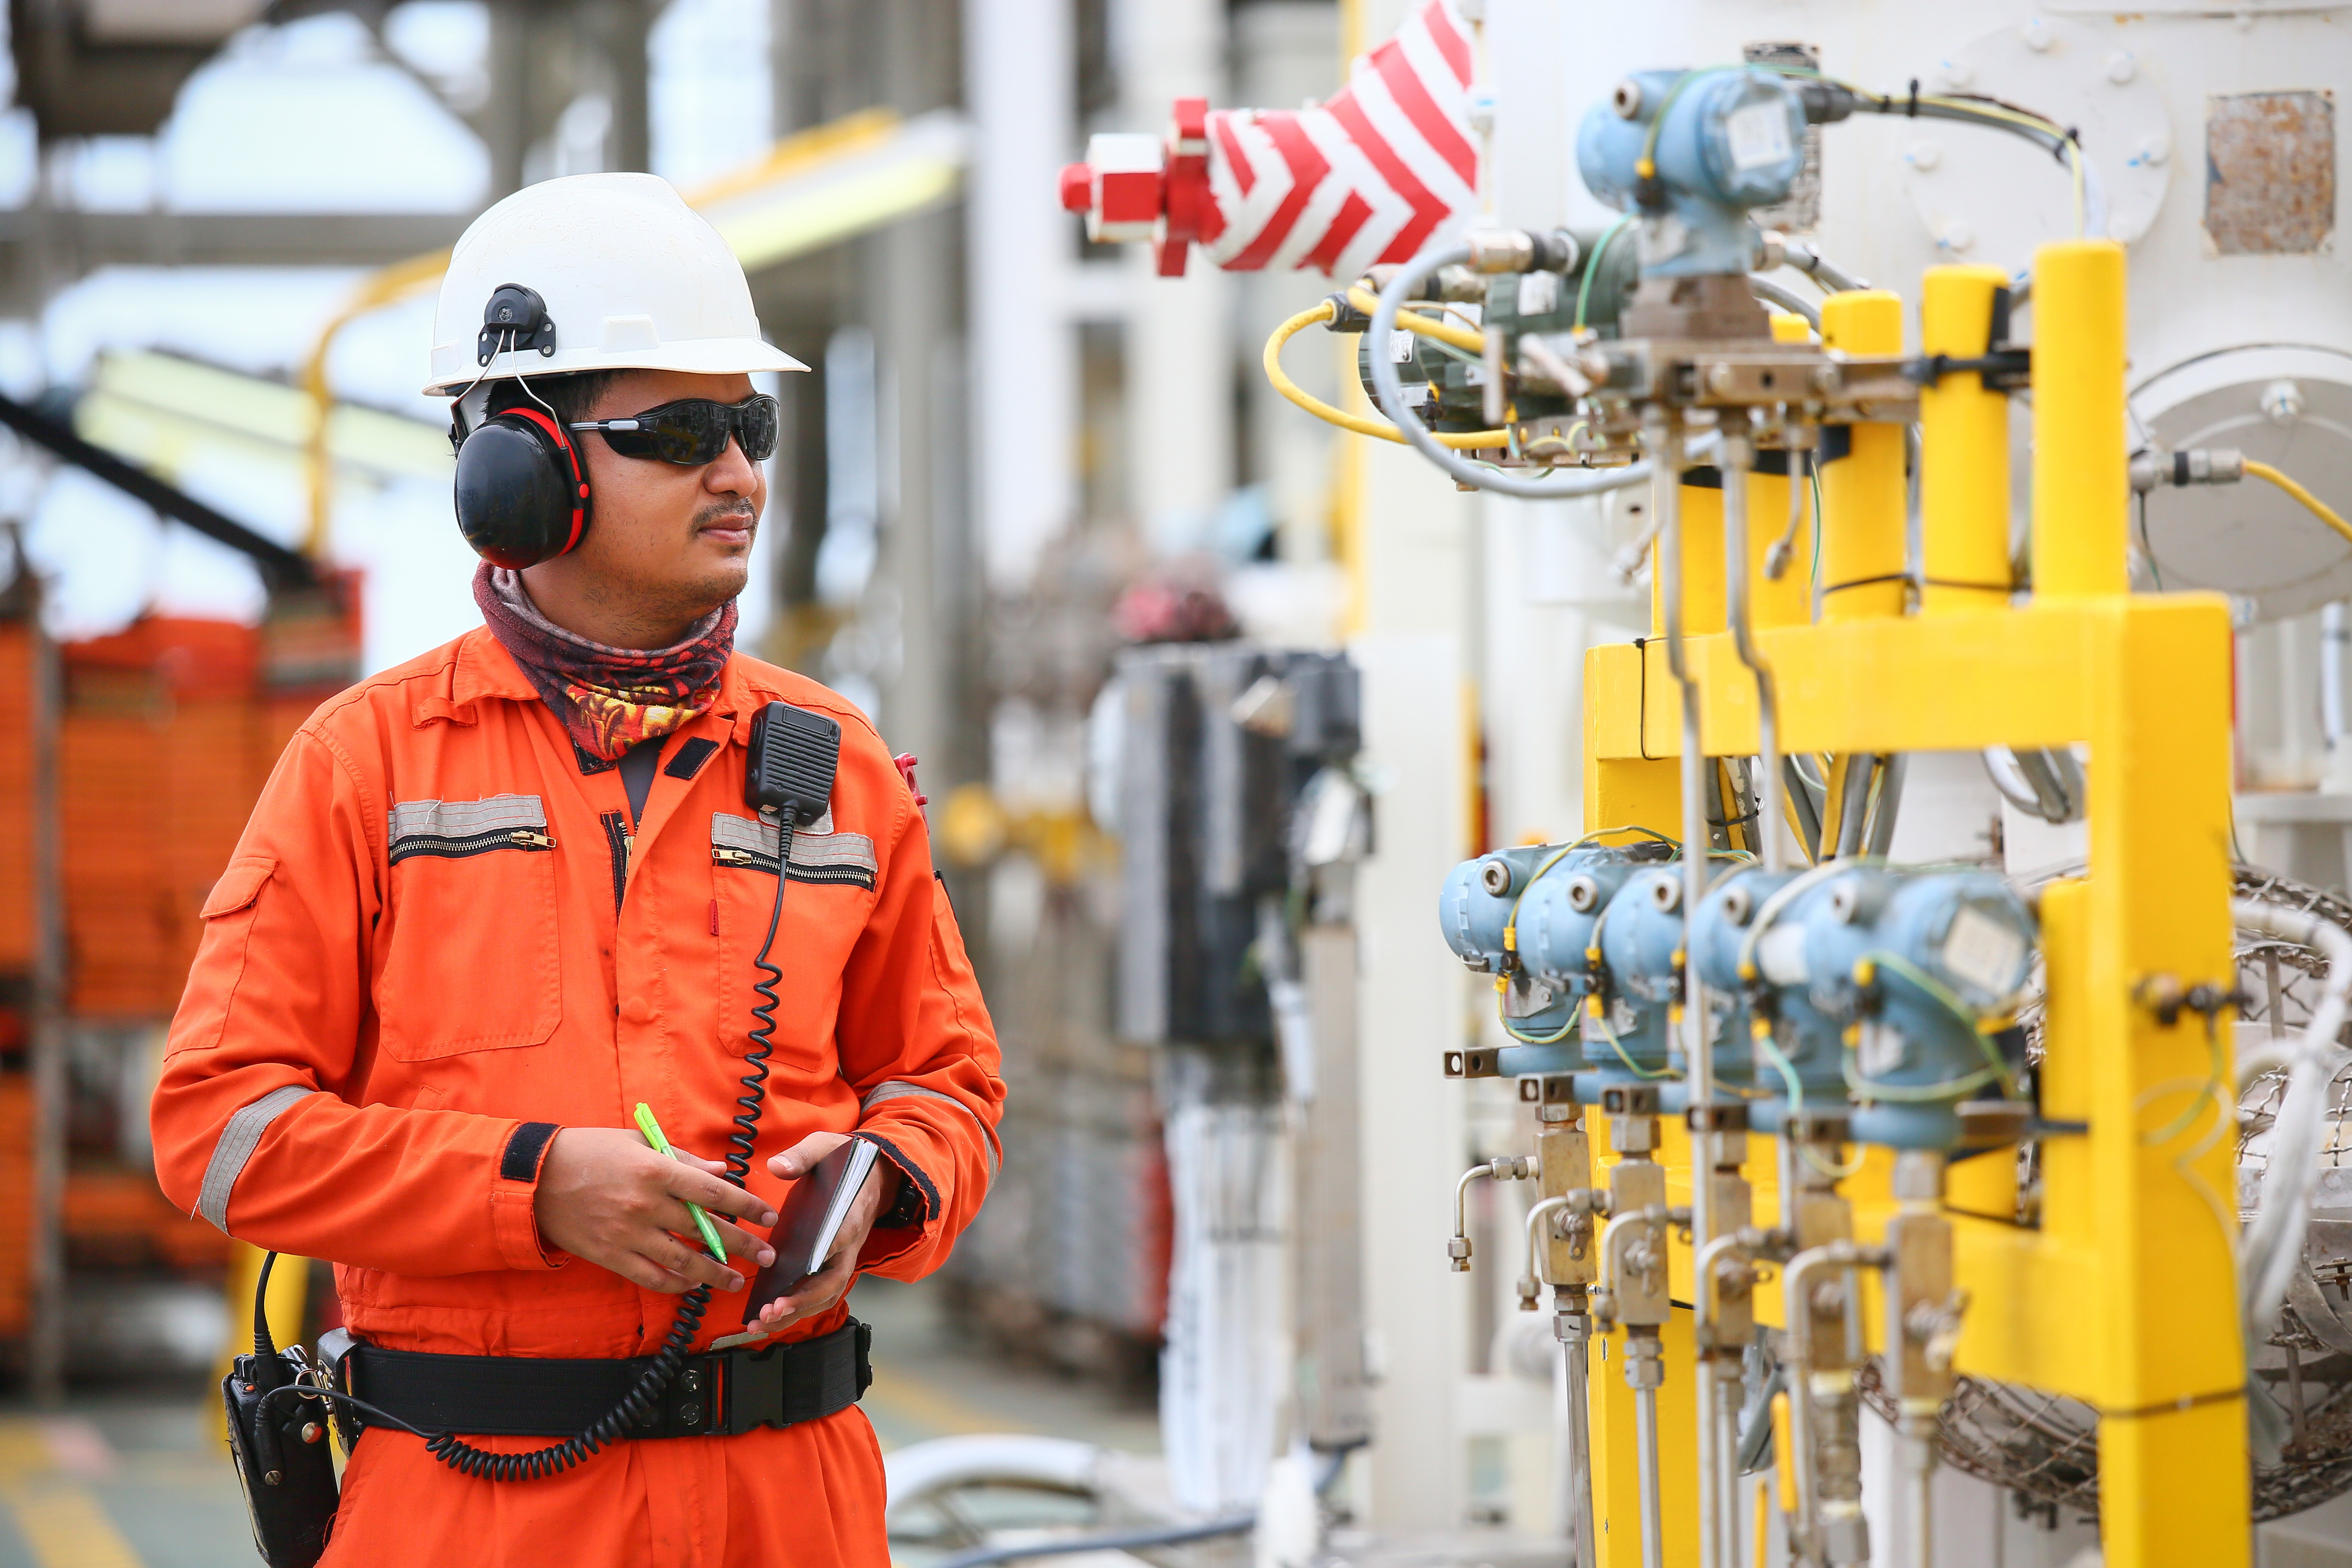 An OSHA safety inspection wearing PPE.